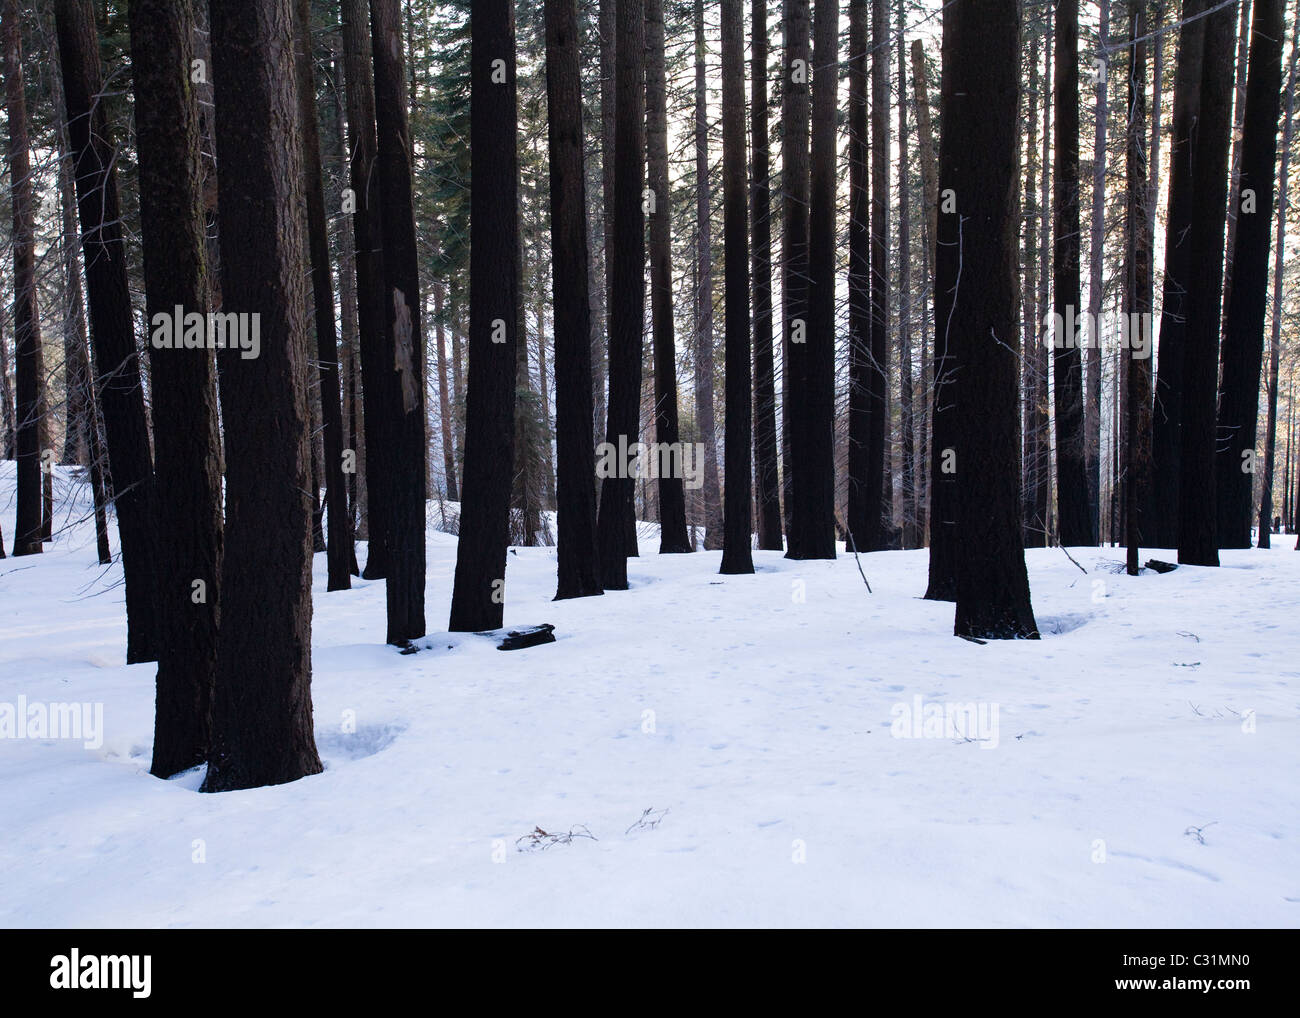 Burned tree forest - Sierra Nevada mountains, California USA - Stock Image